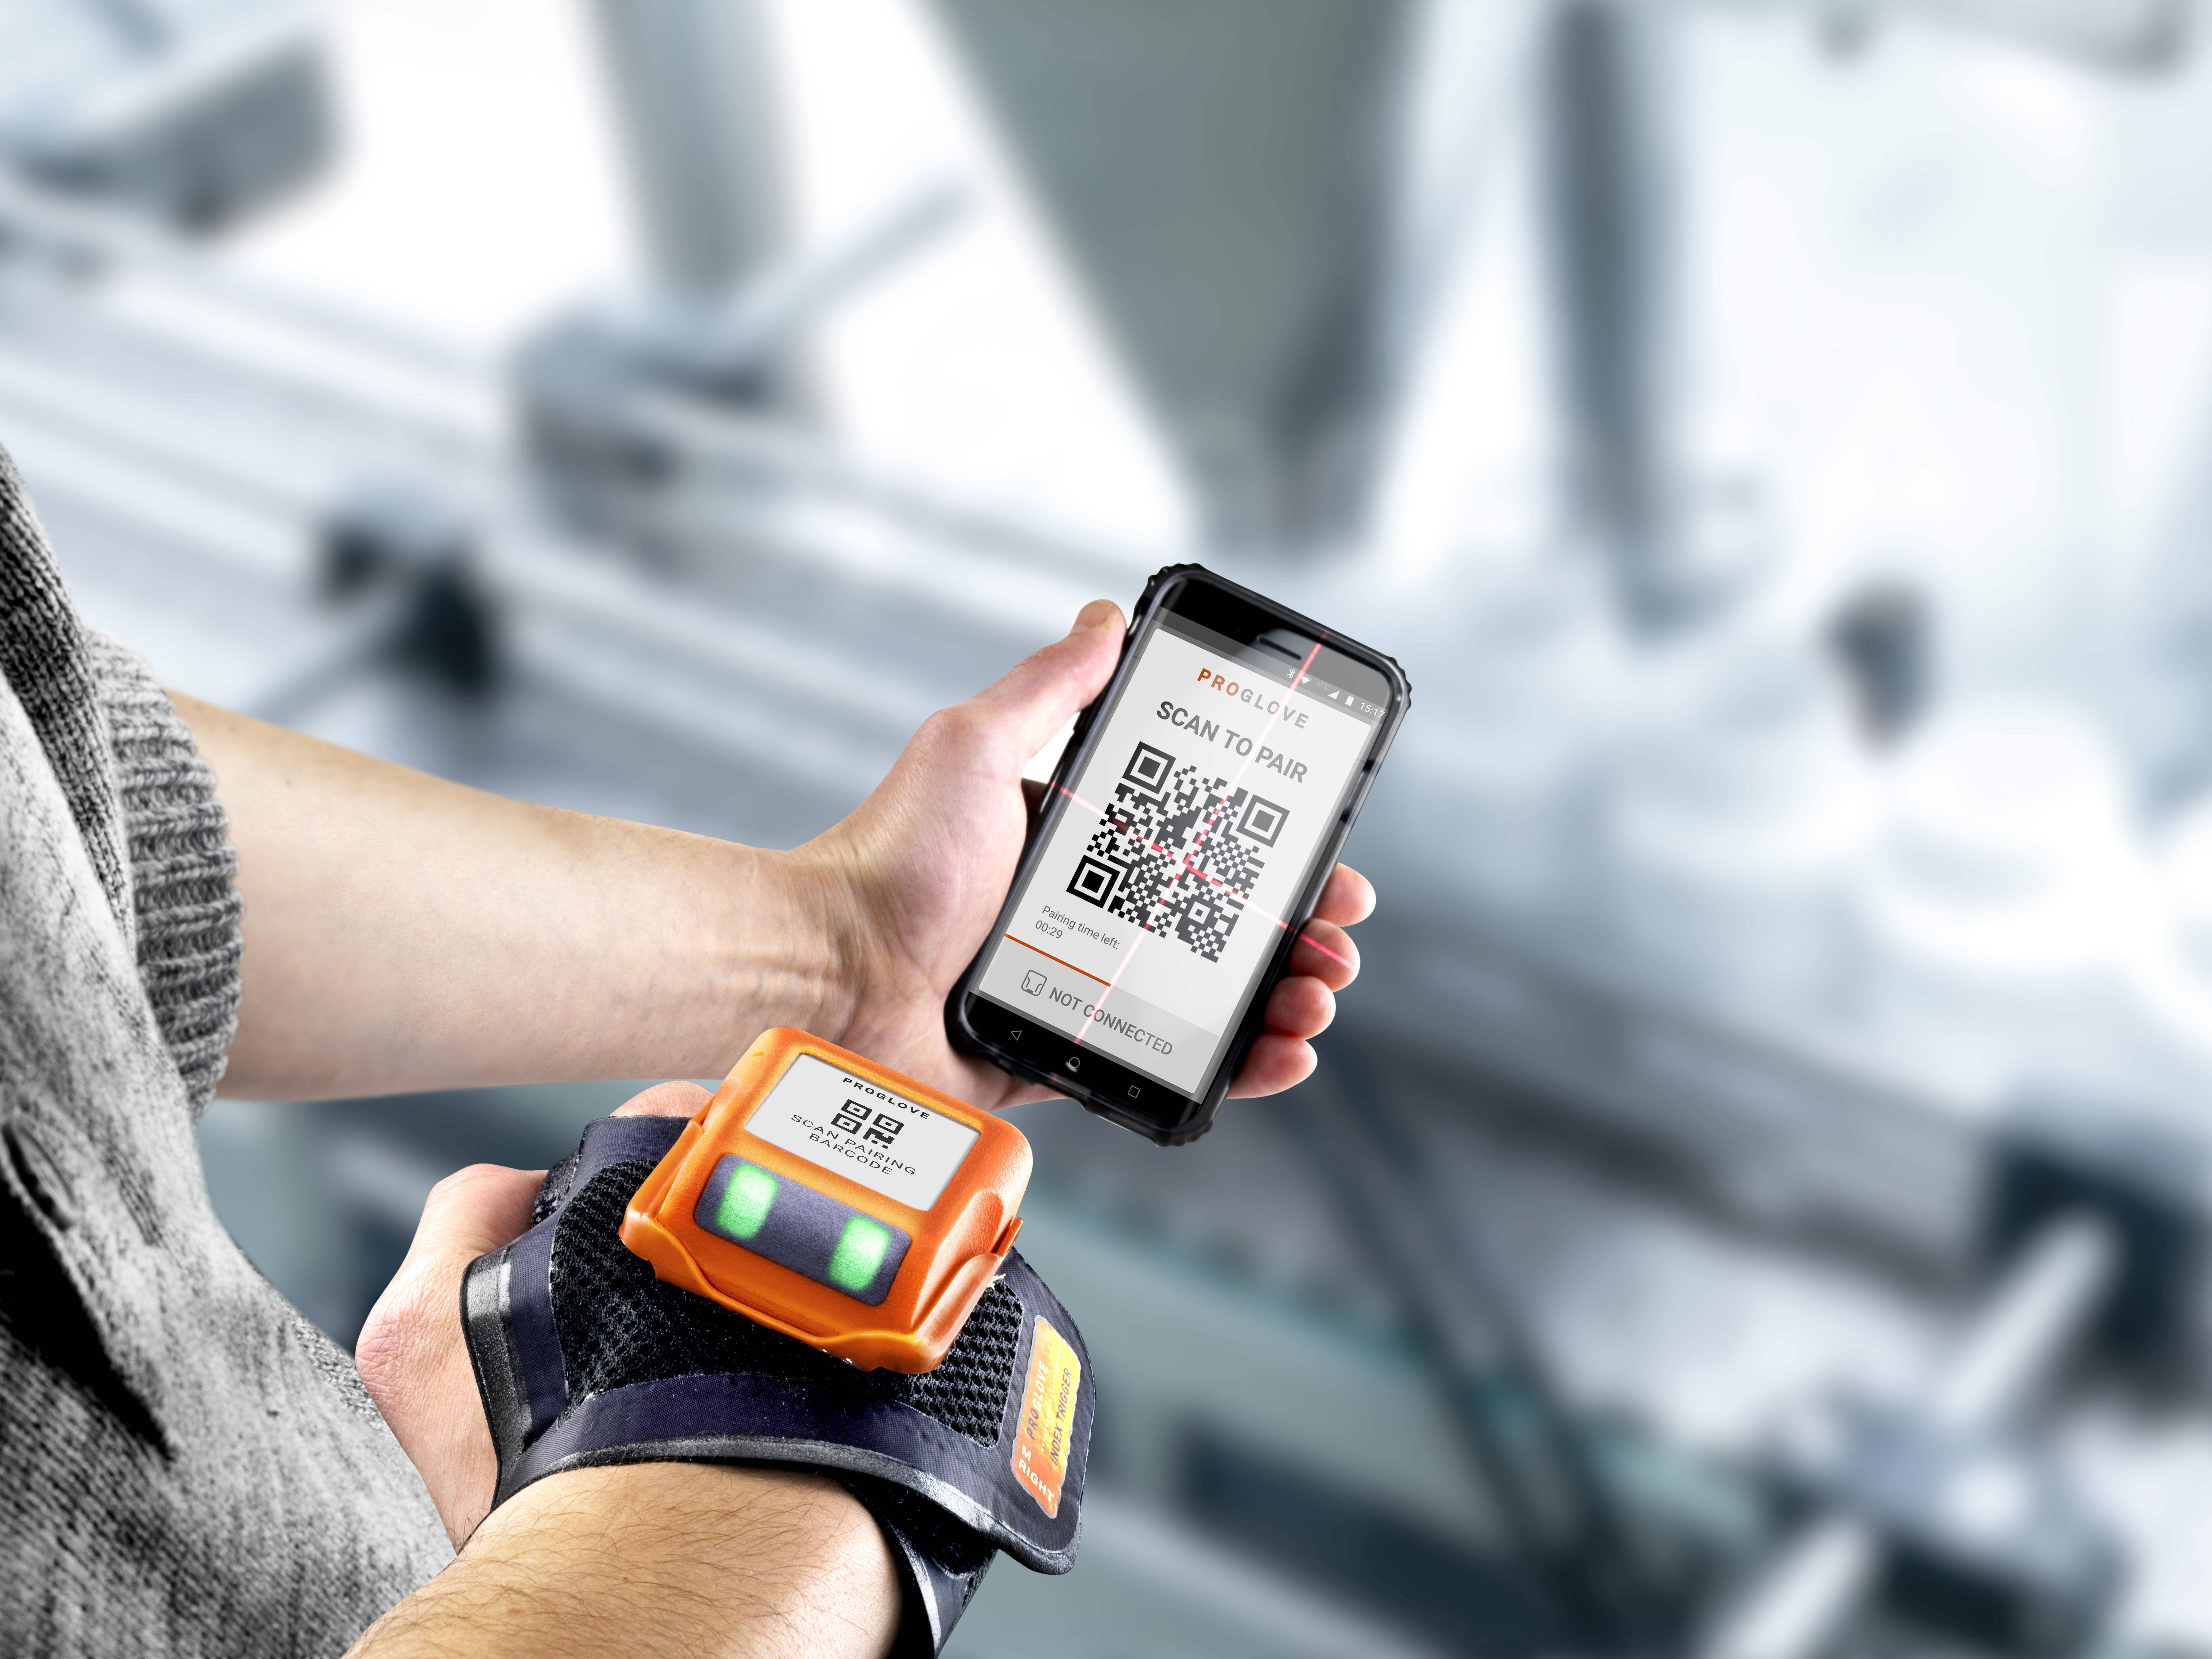 ProGlove Provides Insight Mobile App for Android and New SDK for iOS to Support More Mobile Workers in Warehousing and Logistics